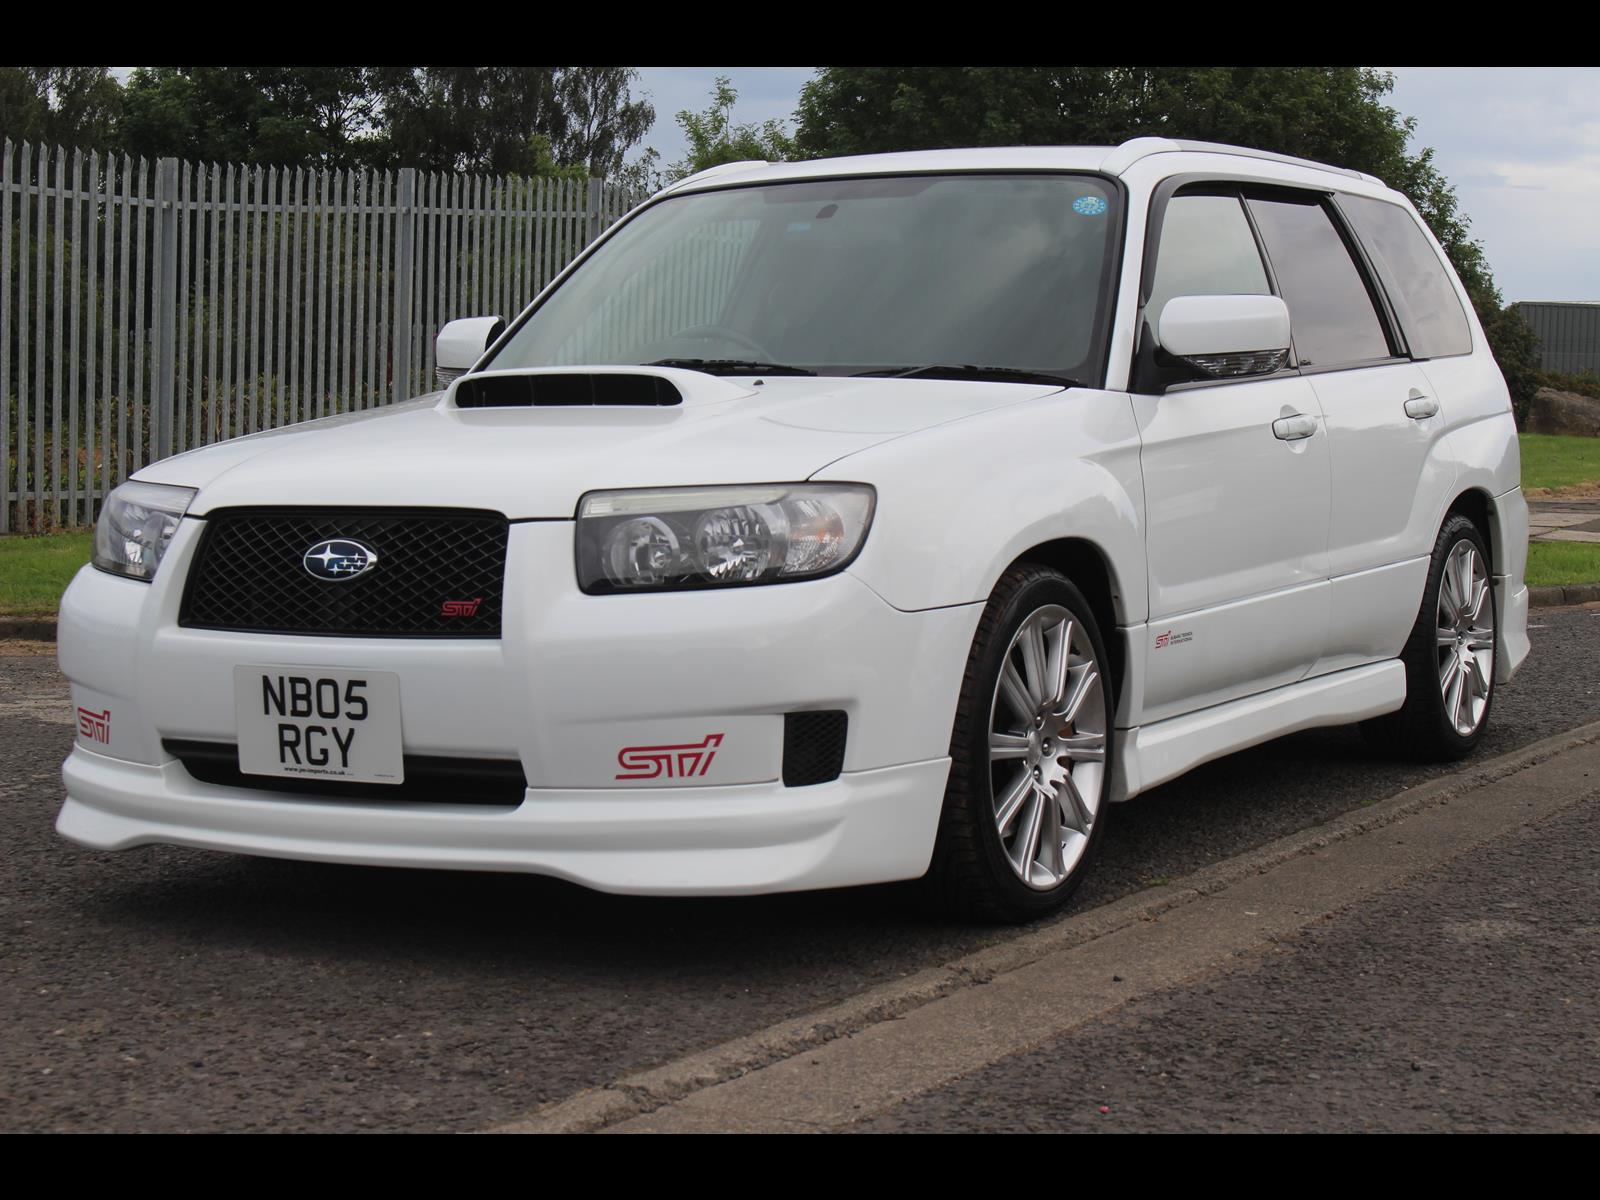 Sti For Sale >> 2005 Subaru Forester STi SG9 6 Speed Manual - JM-Imports